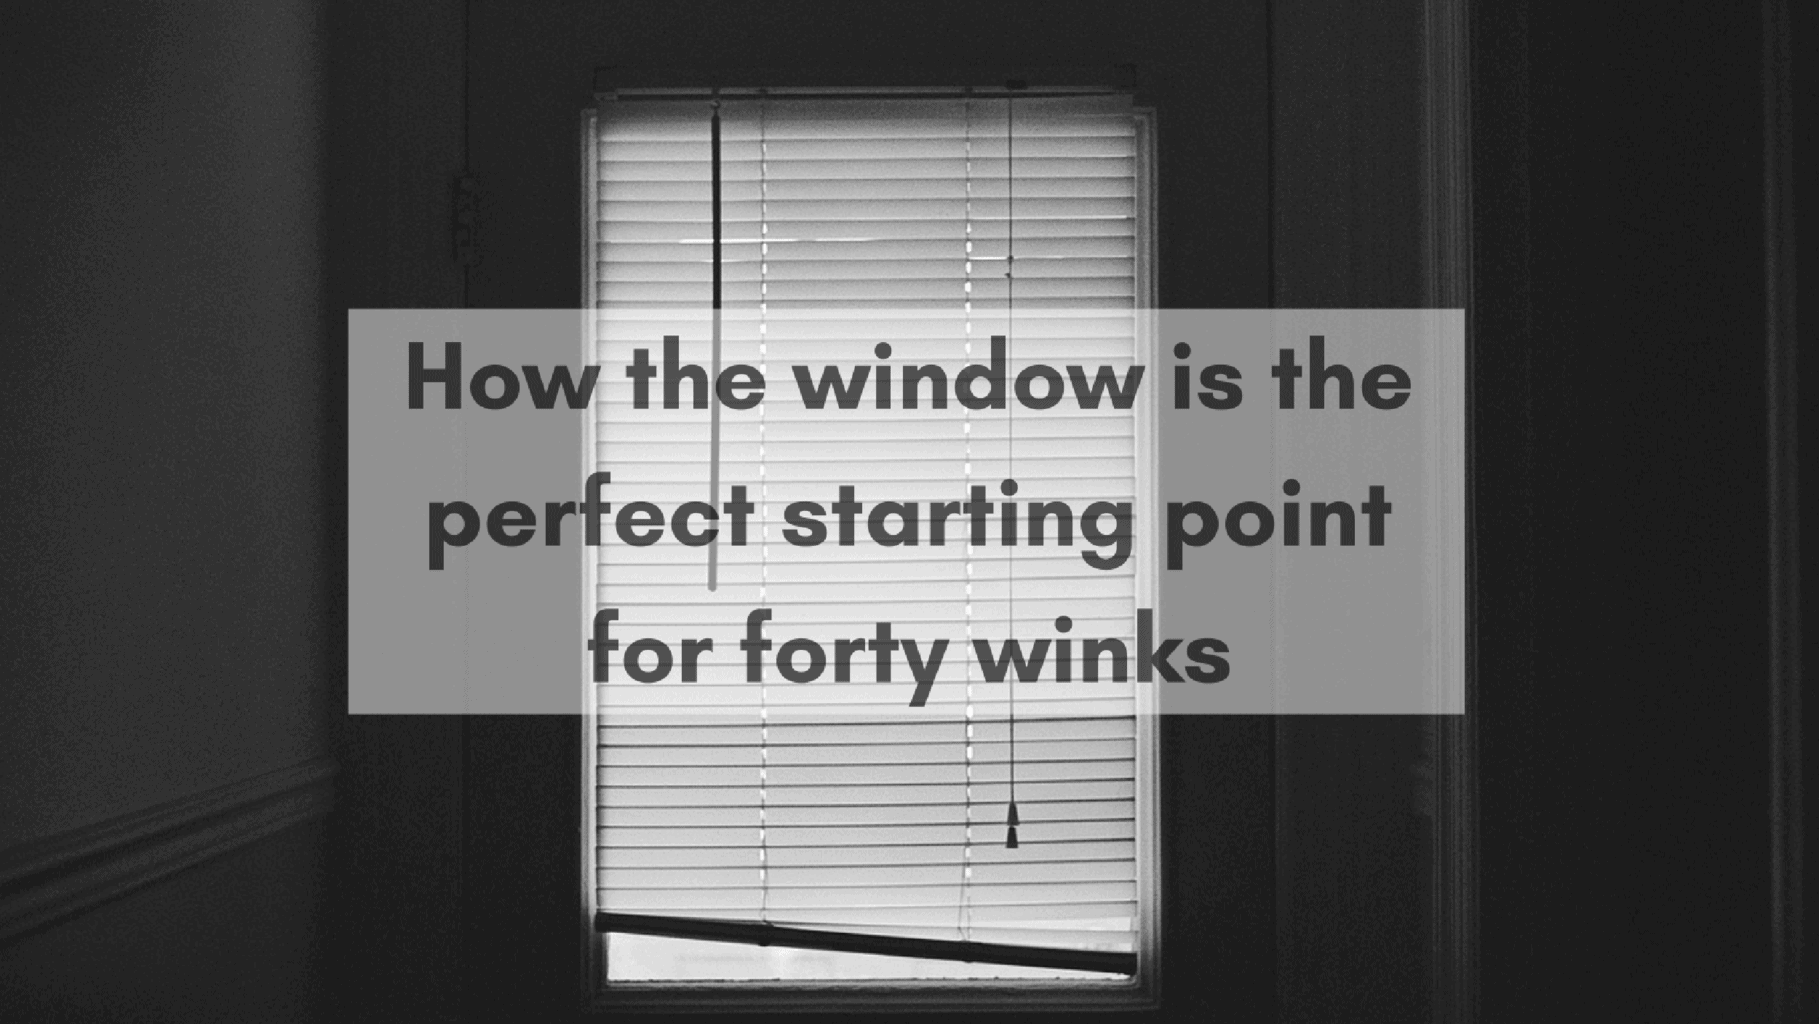 how-the-window-is-the-perfect-starting-point-for-forty-winks